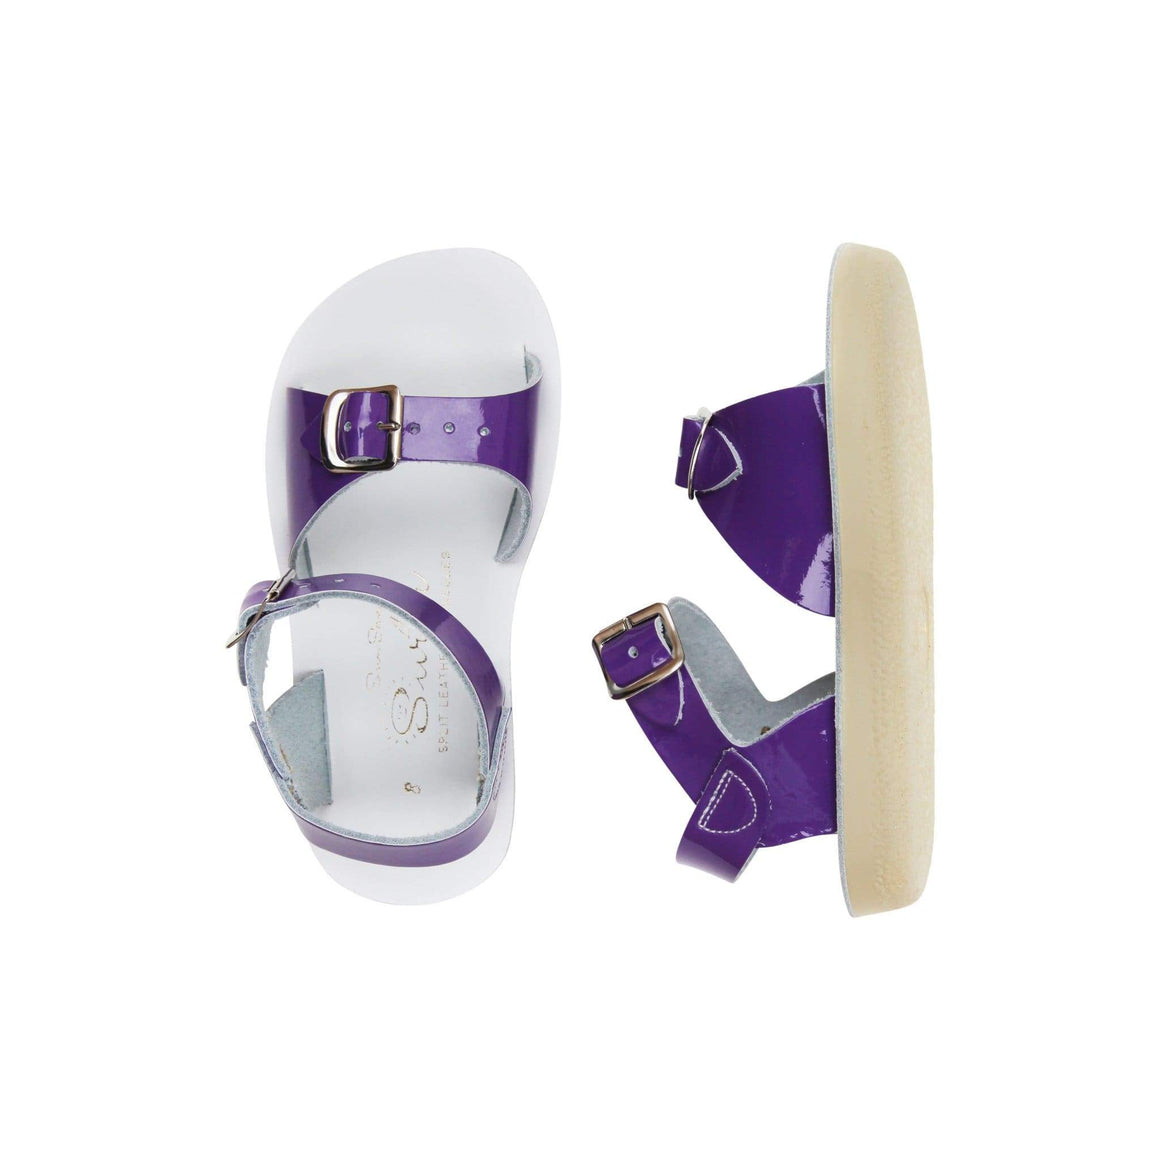 Surfer Salt Water Sandals - Shiny Purple Sandals Salt Water Sandals